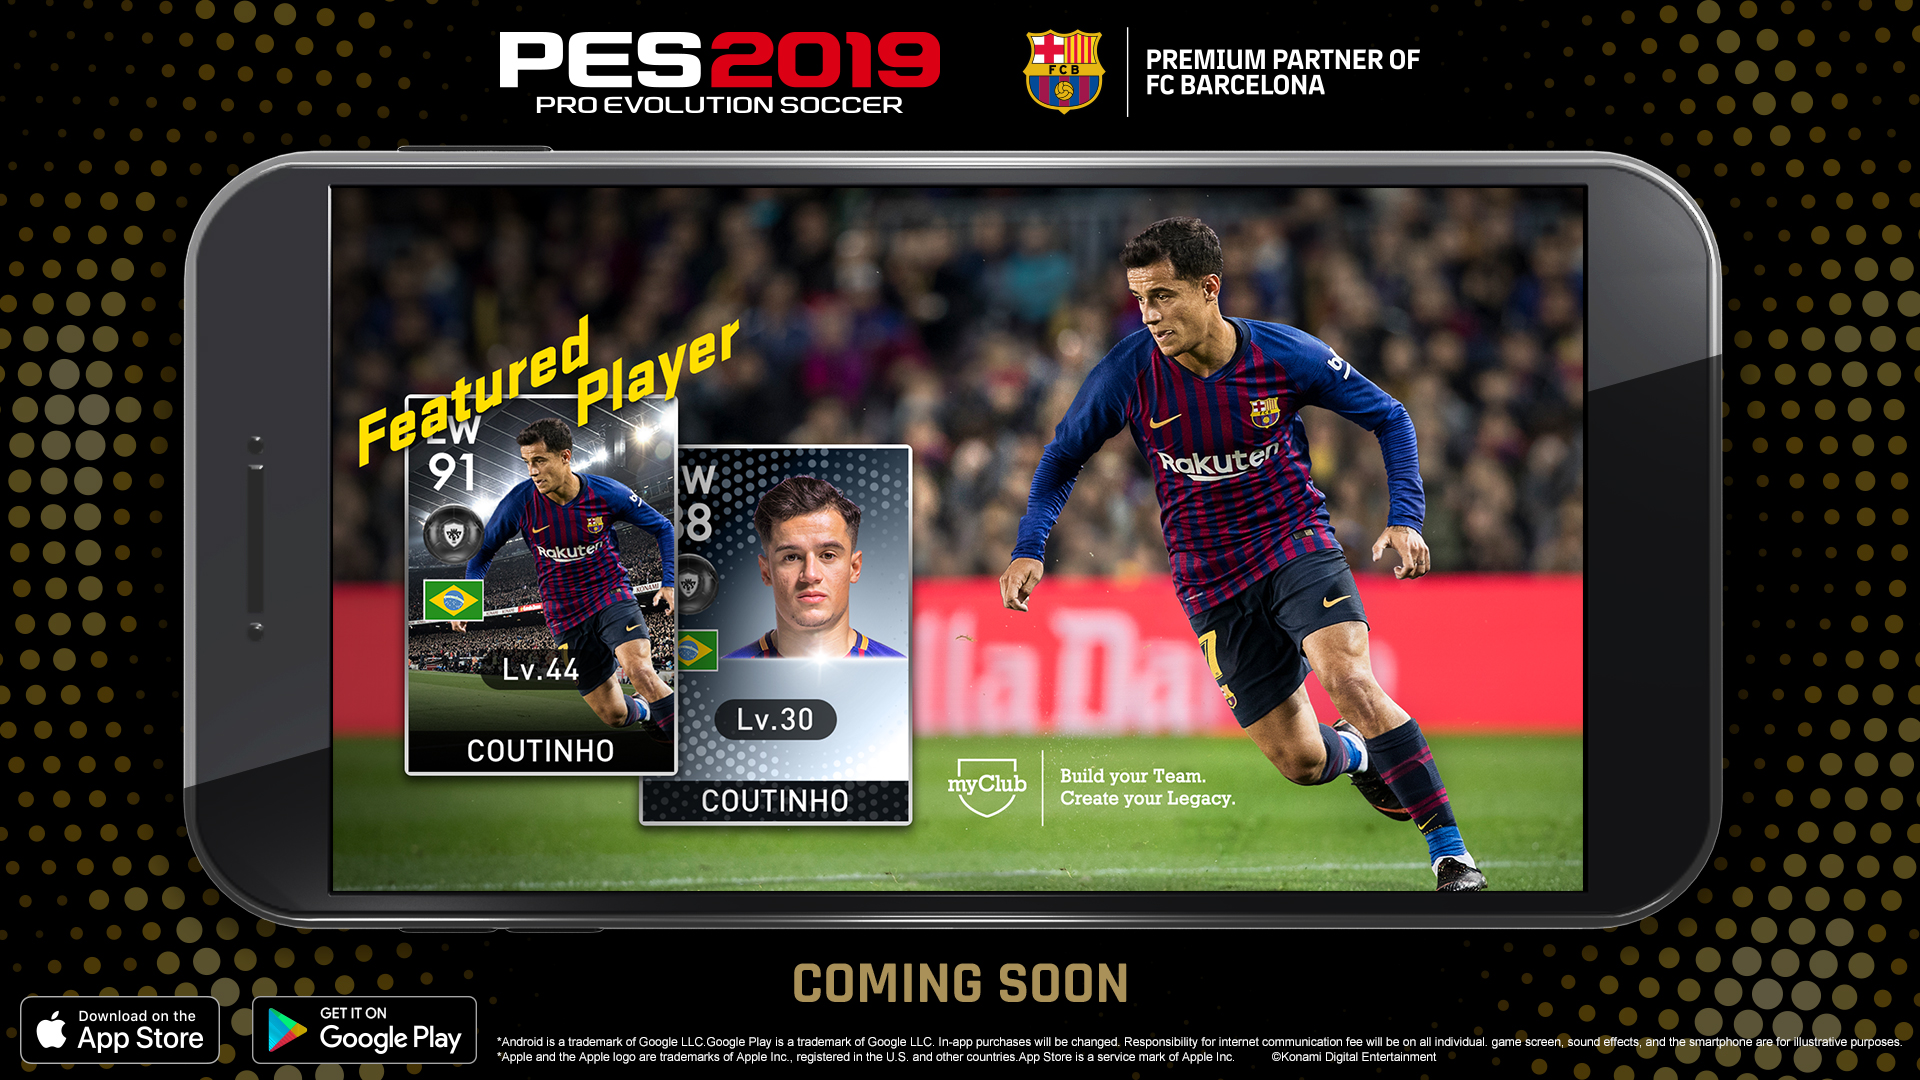 Konami anuncia PES 2019 MOBILE con UNREAL ENGINE 4